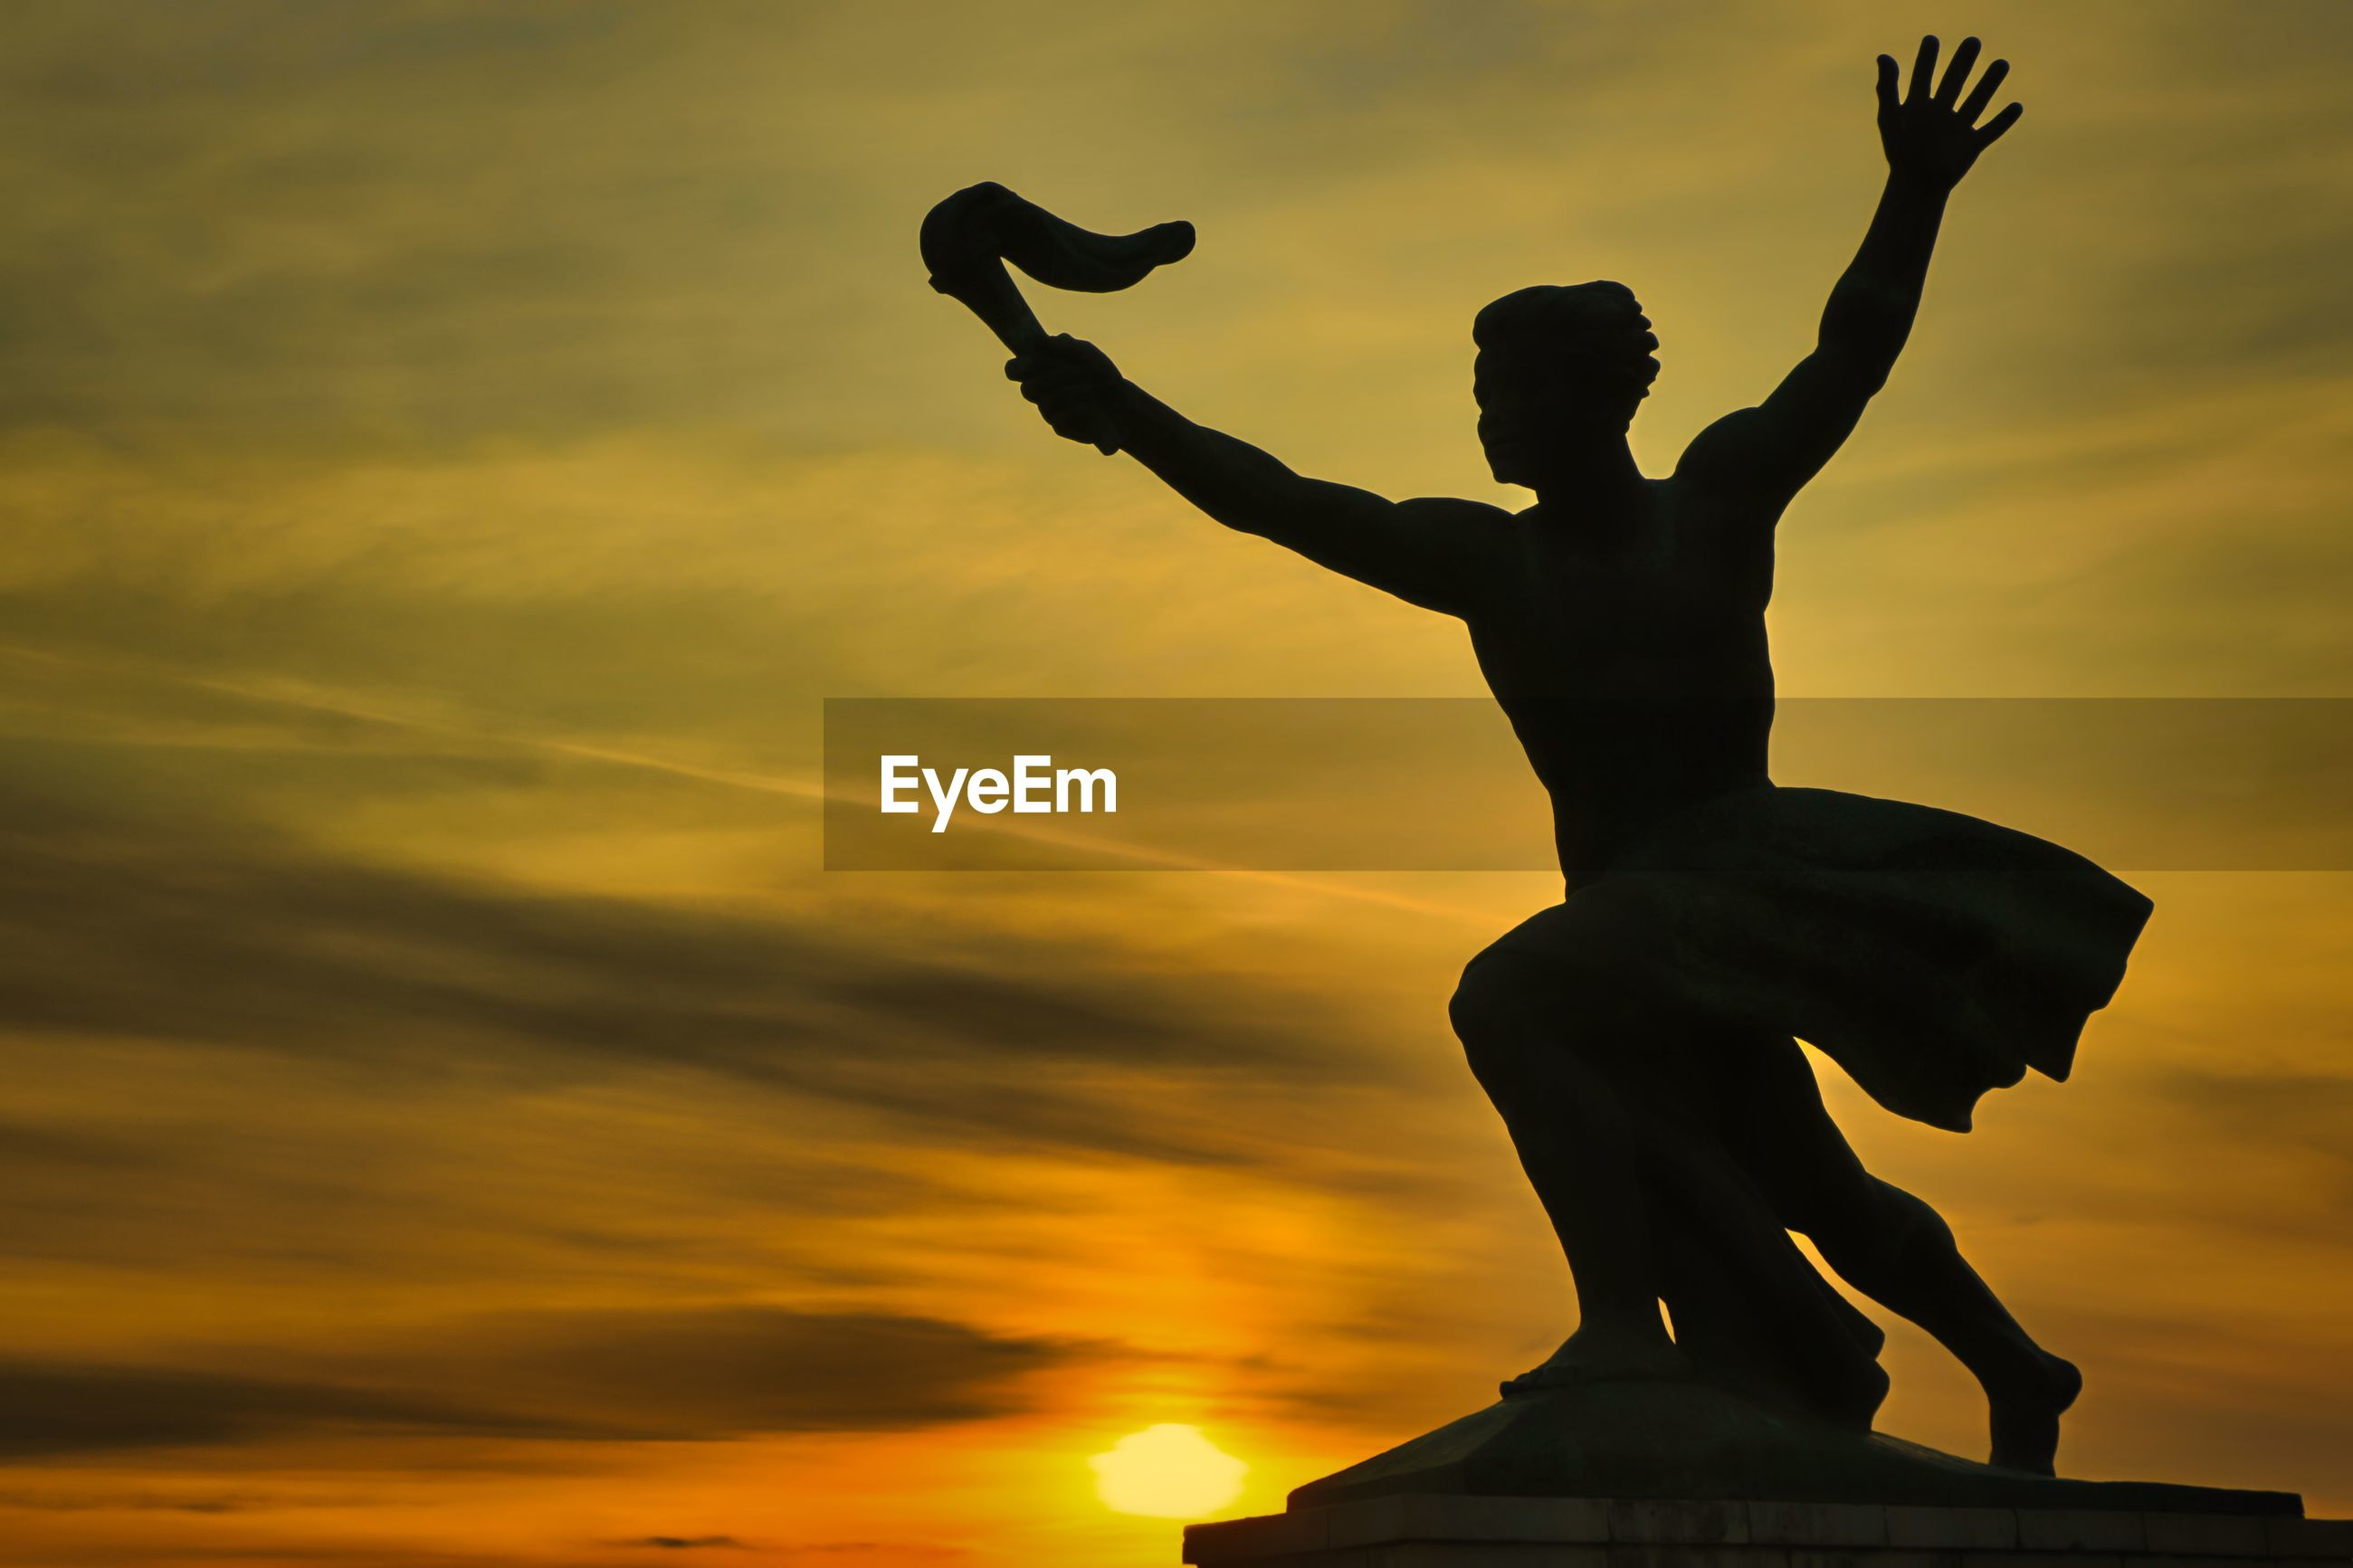 LOW ANGLE VIEW OF SILHOUETTE STATUE AGAINST SKY AT SUNSET